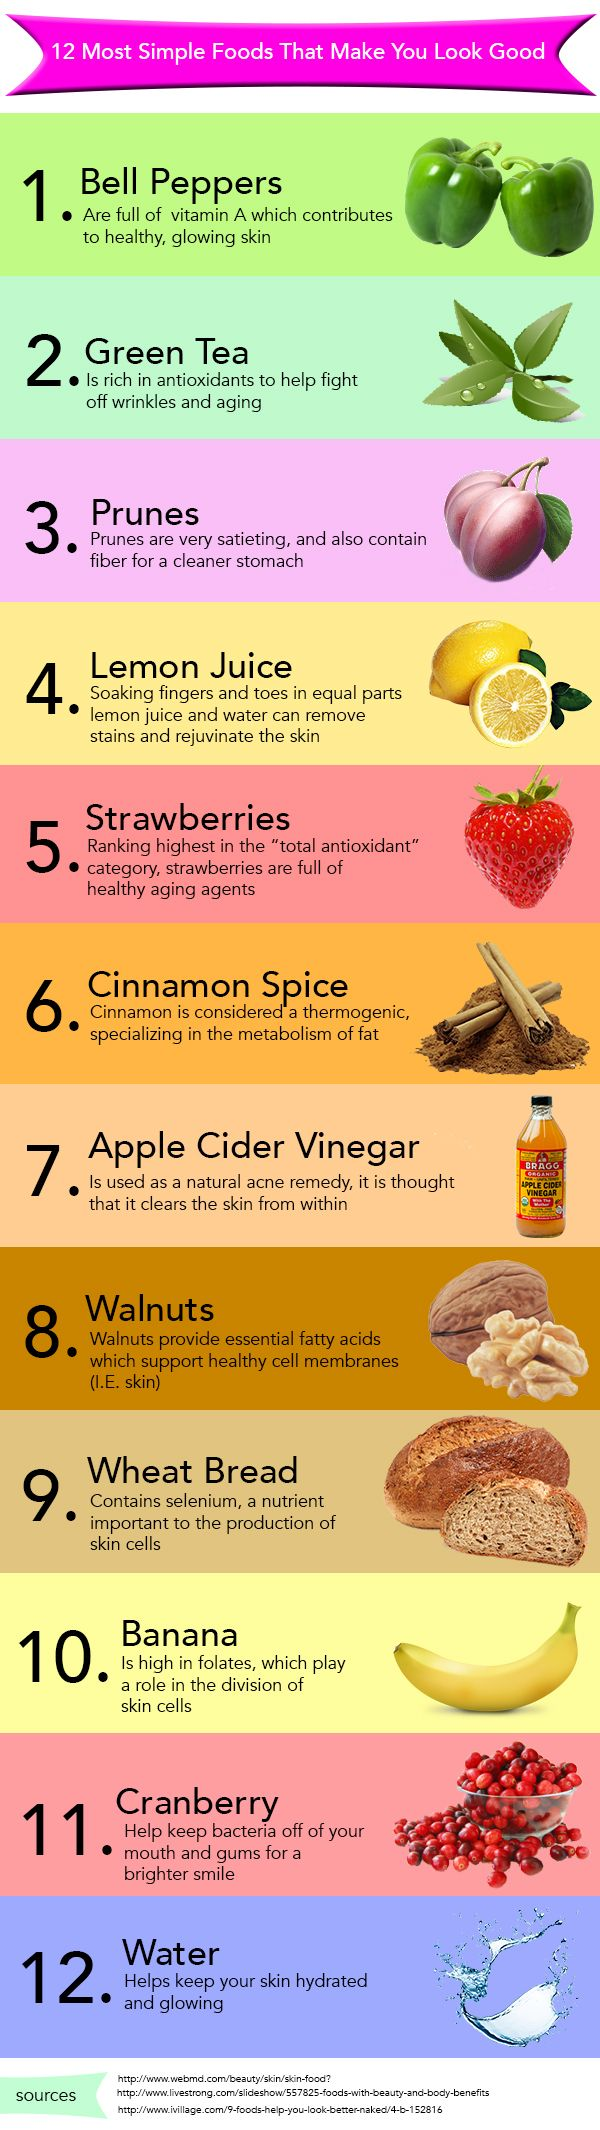 12 Most Simple Foods That Make You Look Good